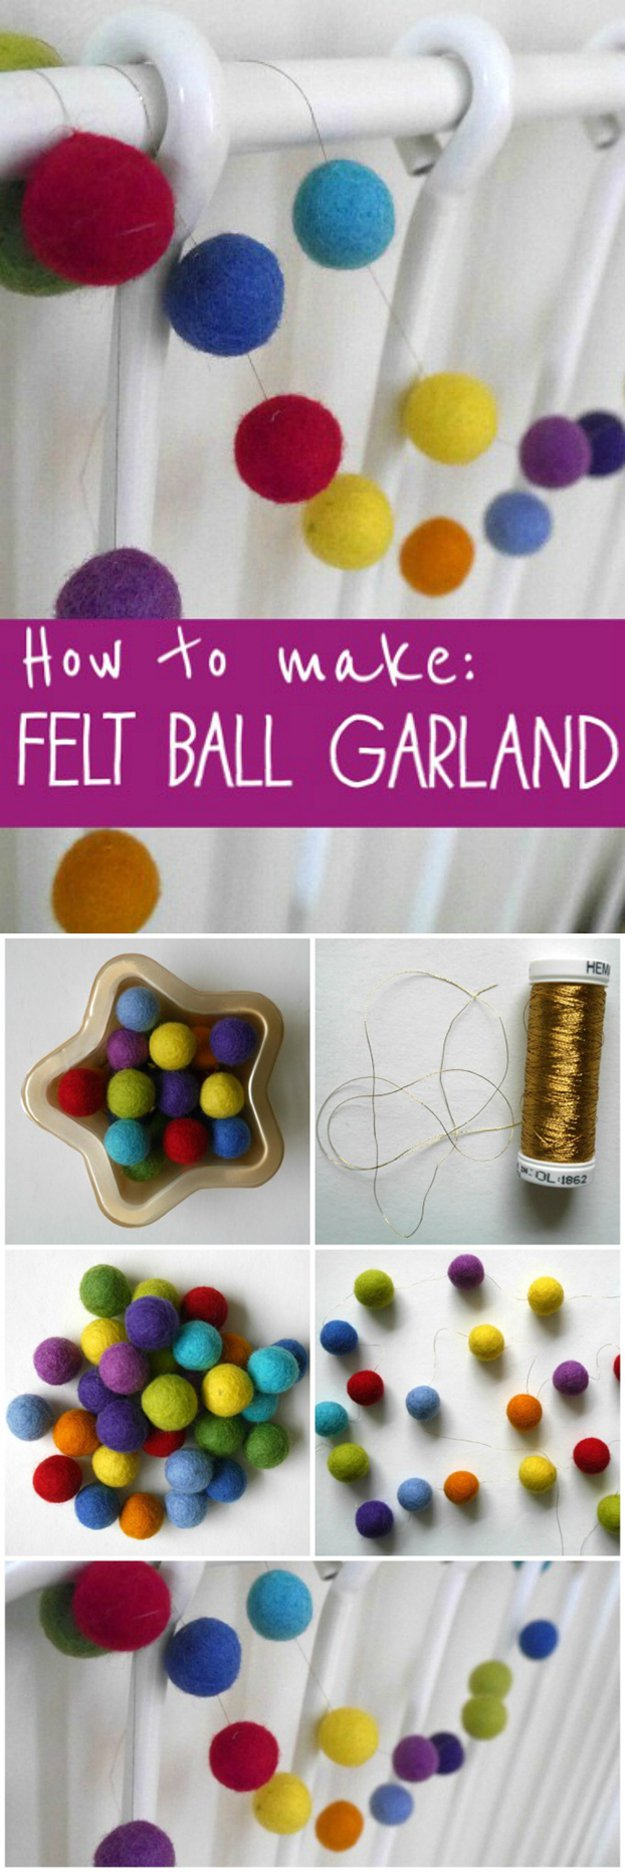 felt ball garland diy